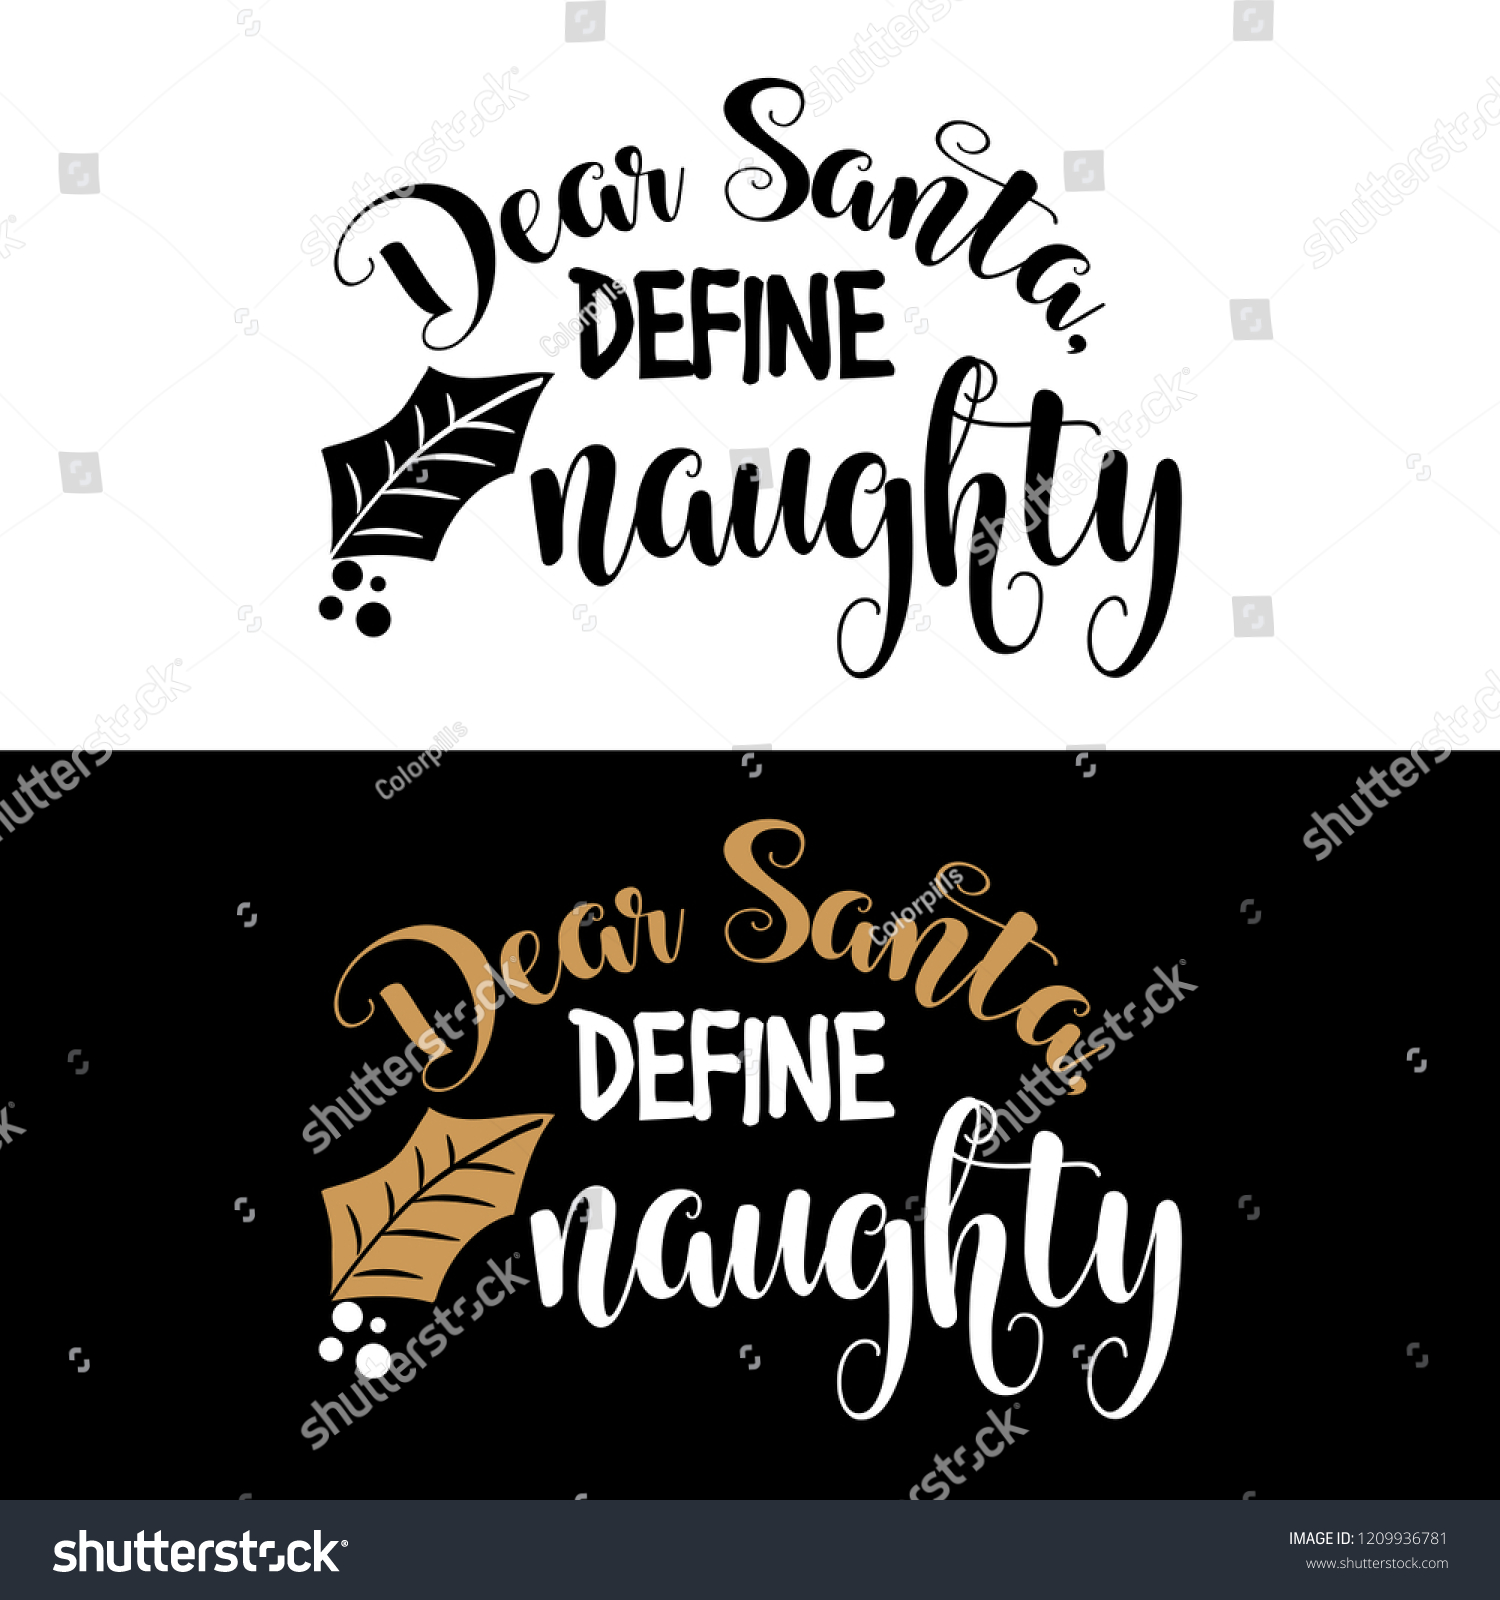 Dear Santa Define Naughty Christmas Quote Stock Vector (Royalty Free ...